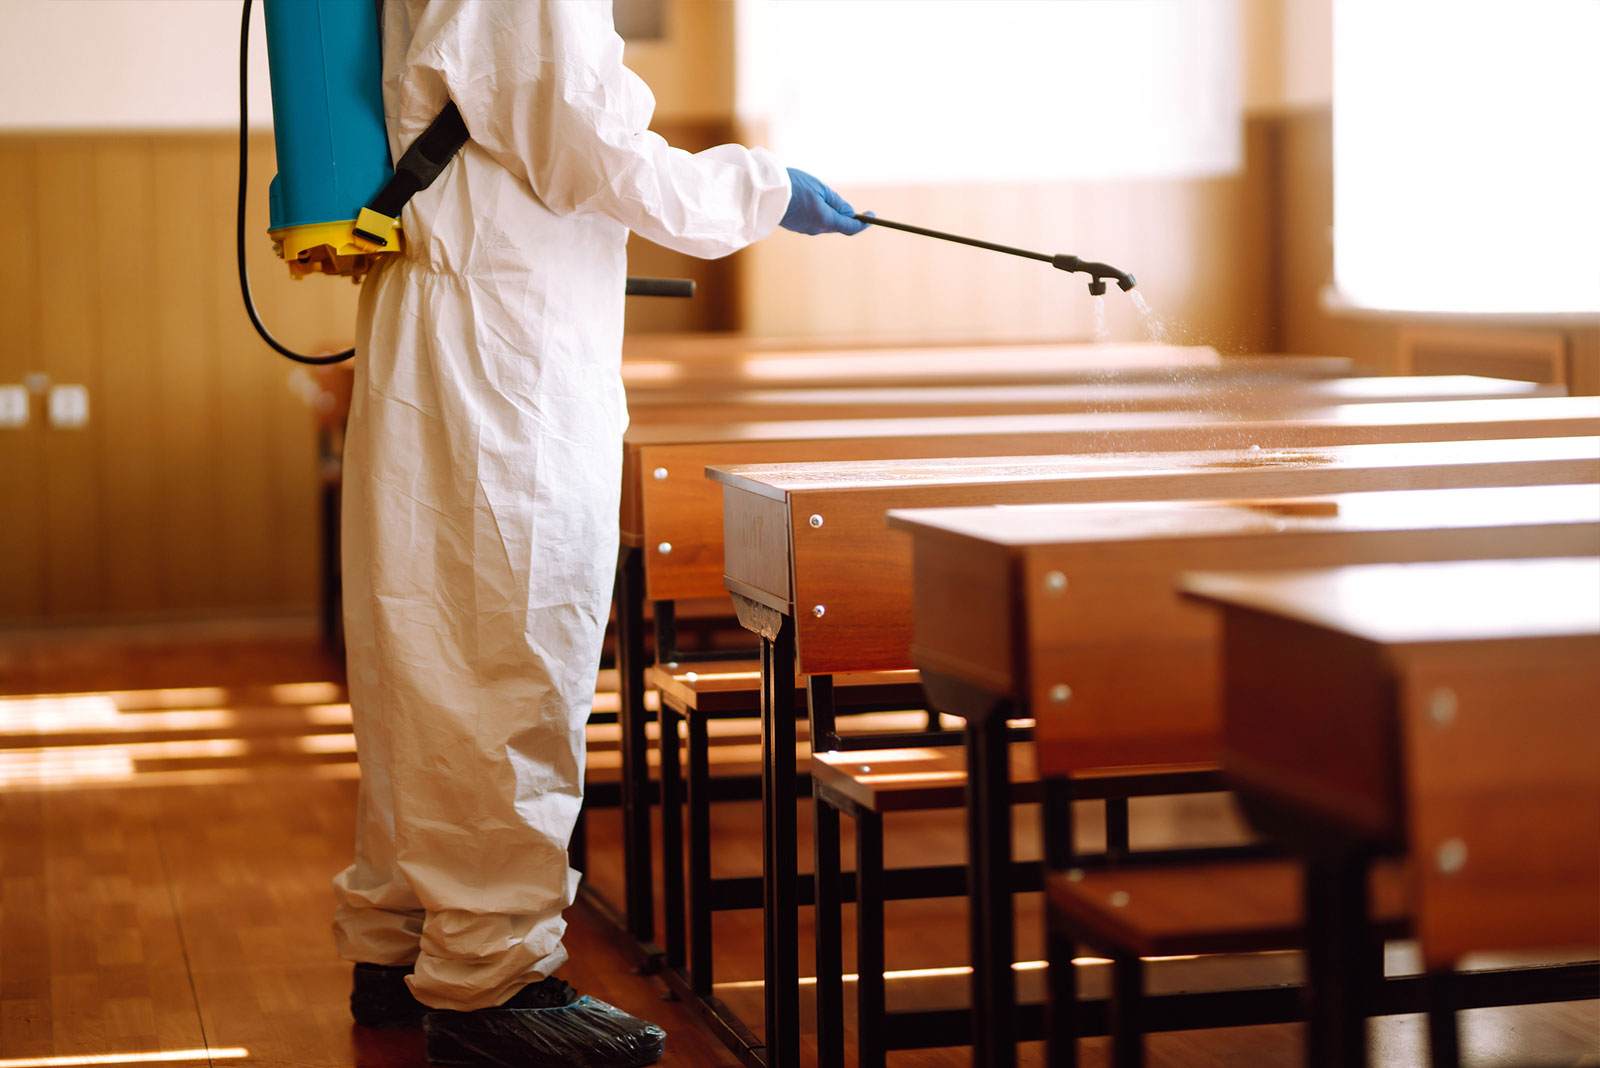 Cleaning vs Disinfecting: What is the Difference?